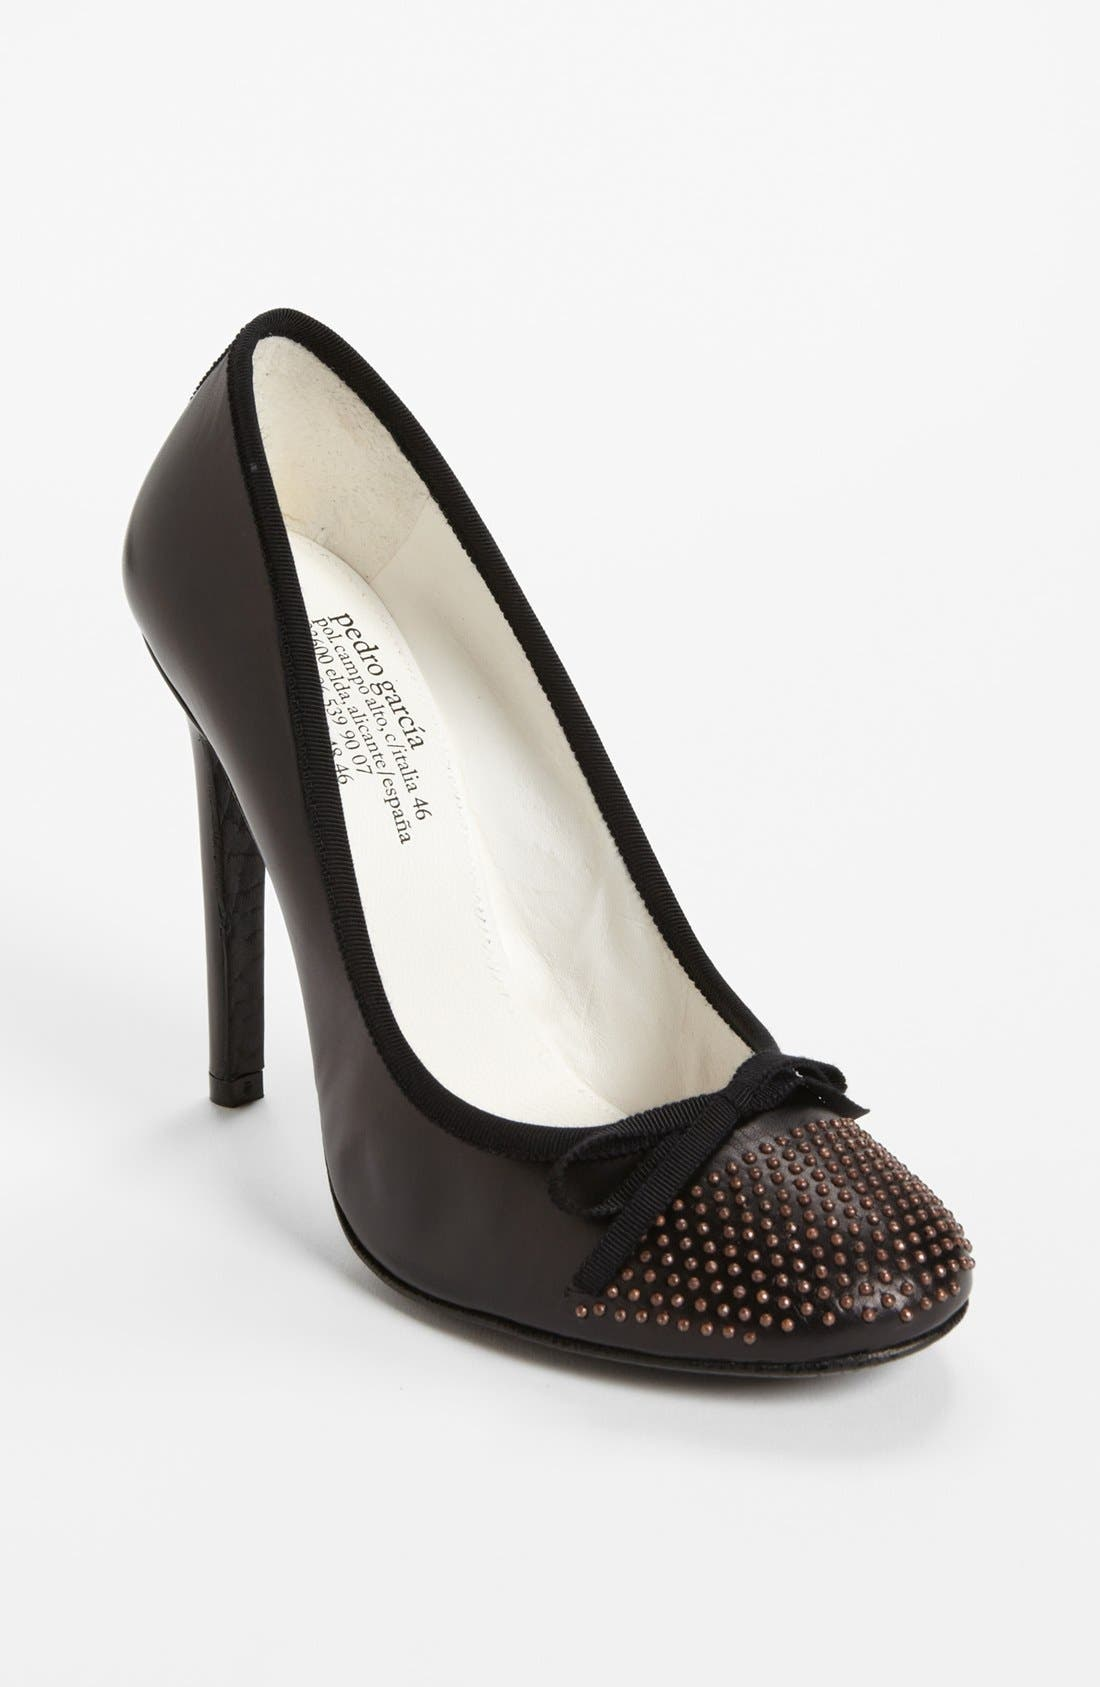 Alternate Image 1 Selected - Pedro Garcia 'Gemma - Microstud' Pump (Nordstrom Exclusive)